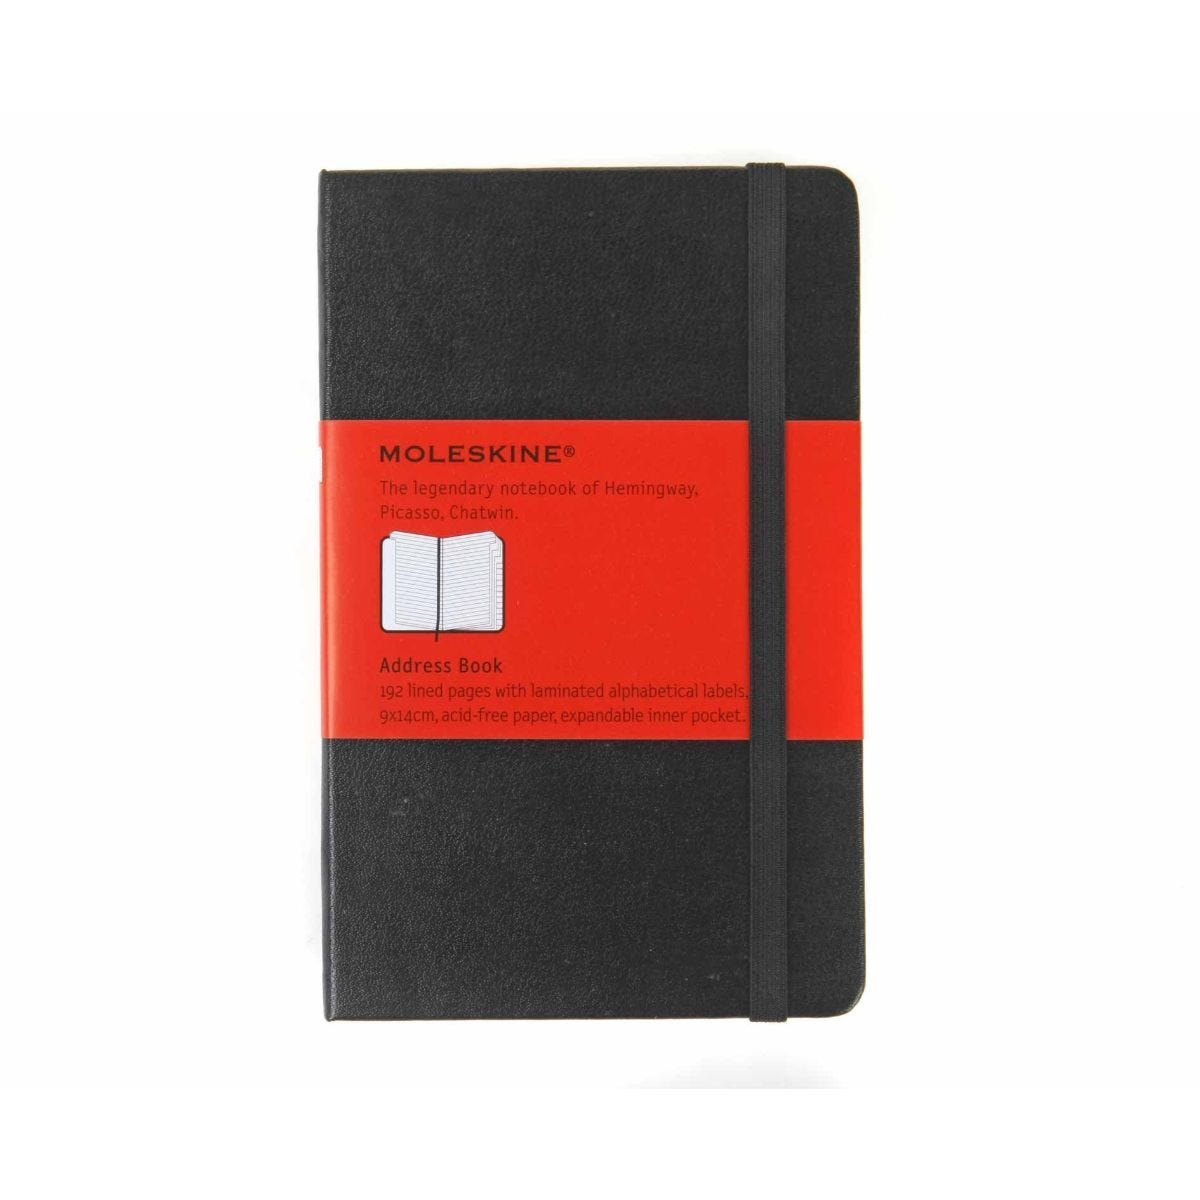 Moleskine Address Book 192 Pages 96 Sheets